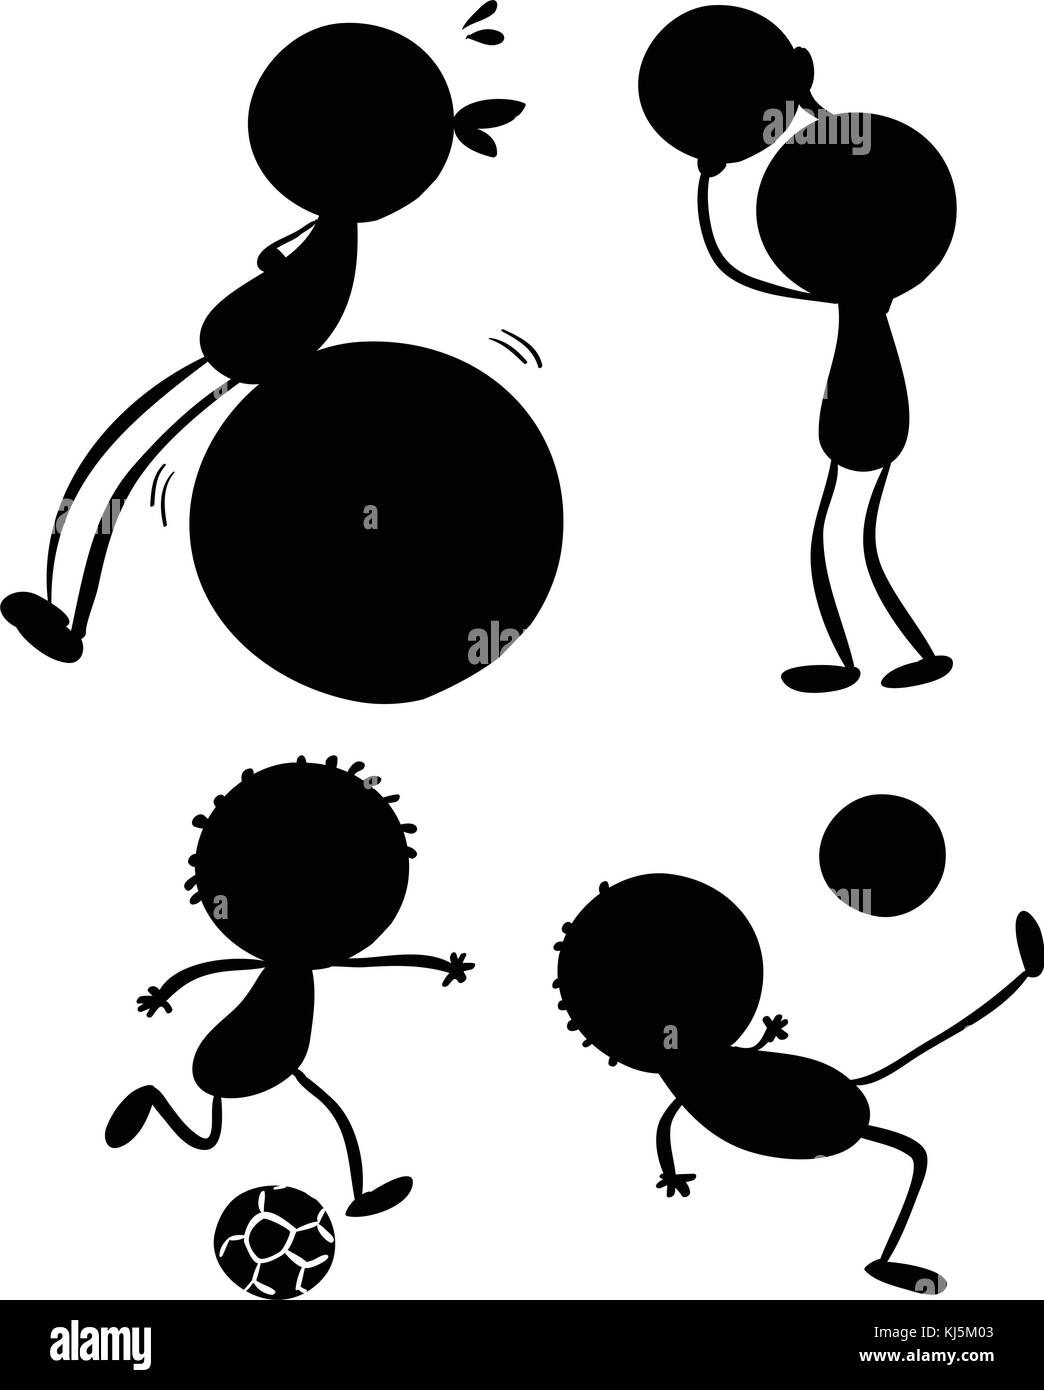 Illustration of the silhouettes of sporty people on a white background - Stock Image